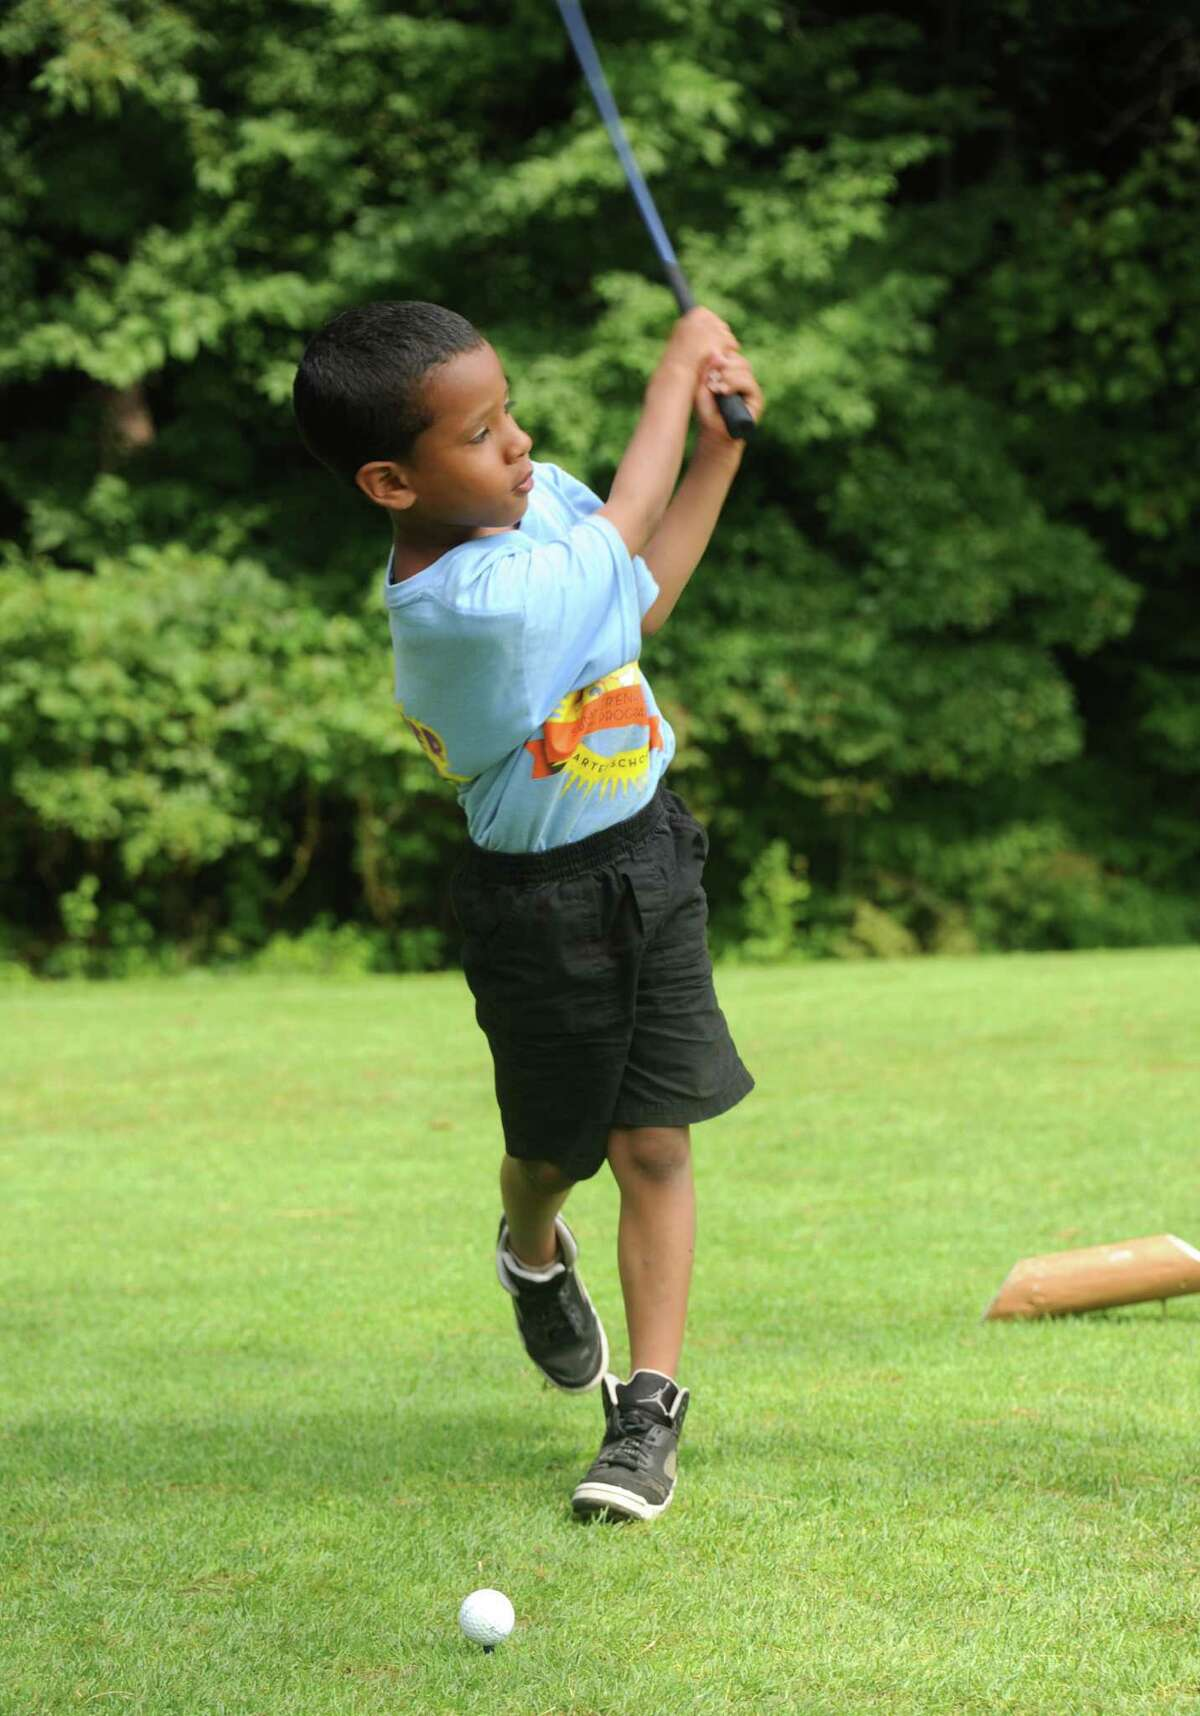 Lorne Johnson, 7, has a nice follow through as he misses his first try on a tee as children from the city of Albany get some golf lessons during a program at Colonial Acres Golf Course on Friday, Aug. 1, 2014 in Glenmont, N.Y. (Lori Van Buren / Times Union)